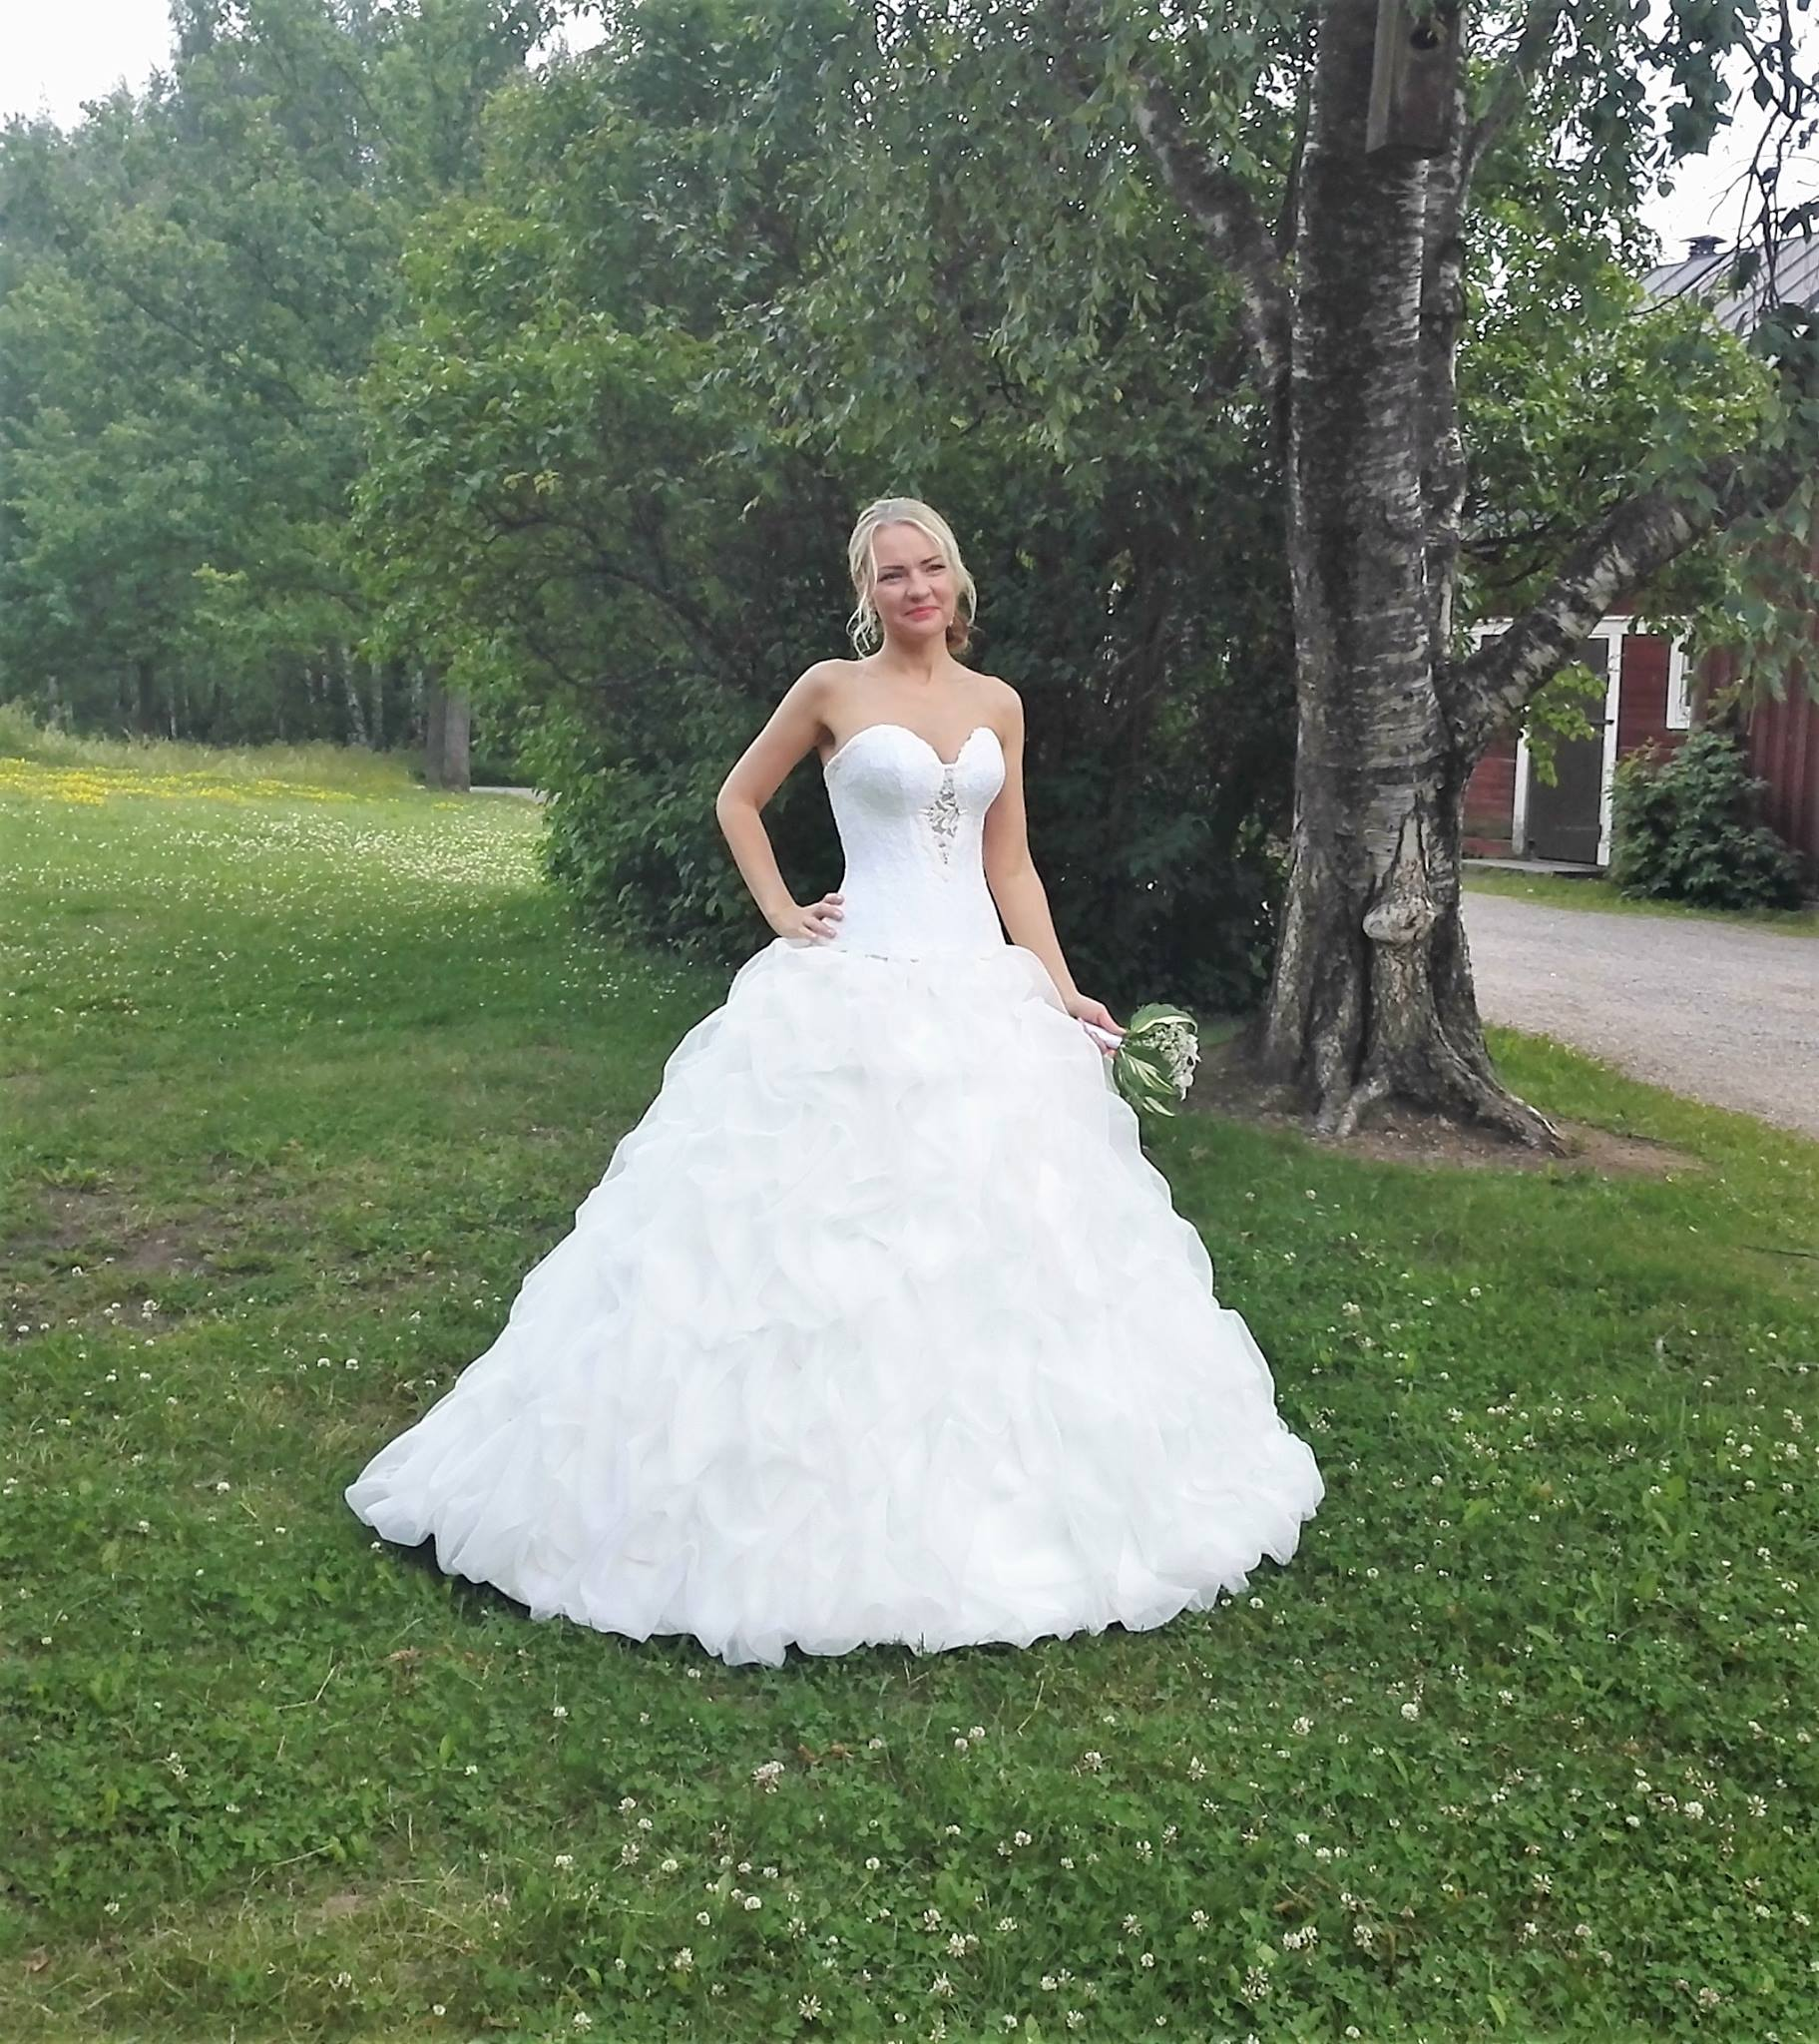 HÄÄPUKU WEDDING DRESS Свадебное